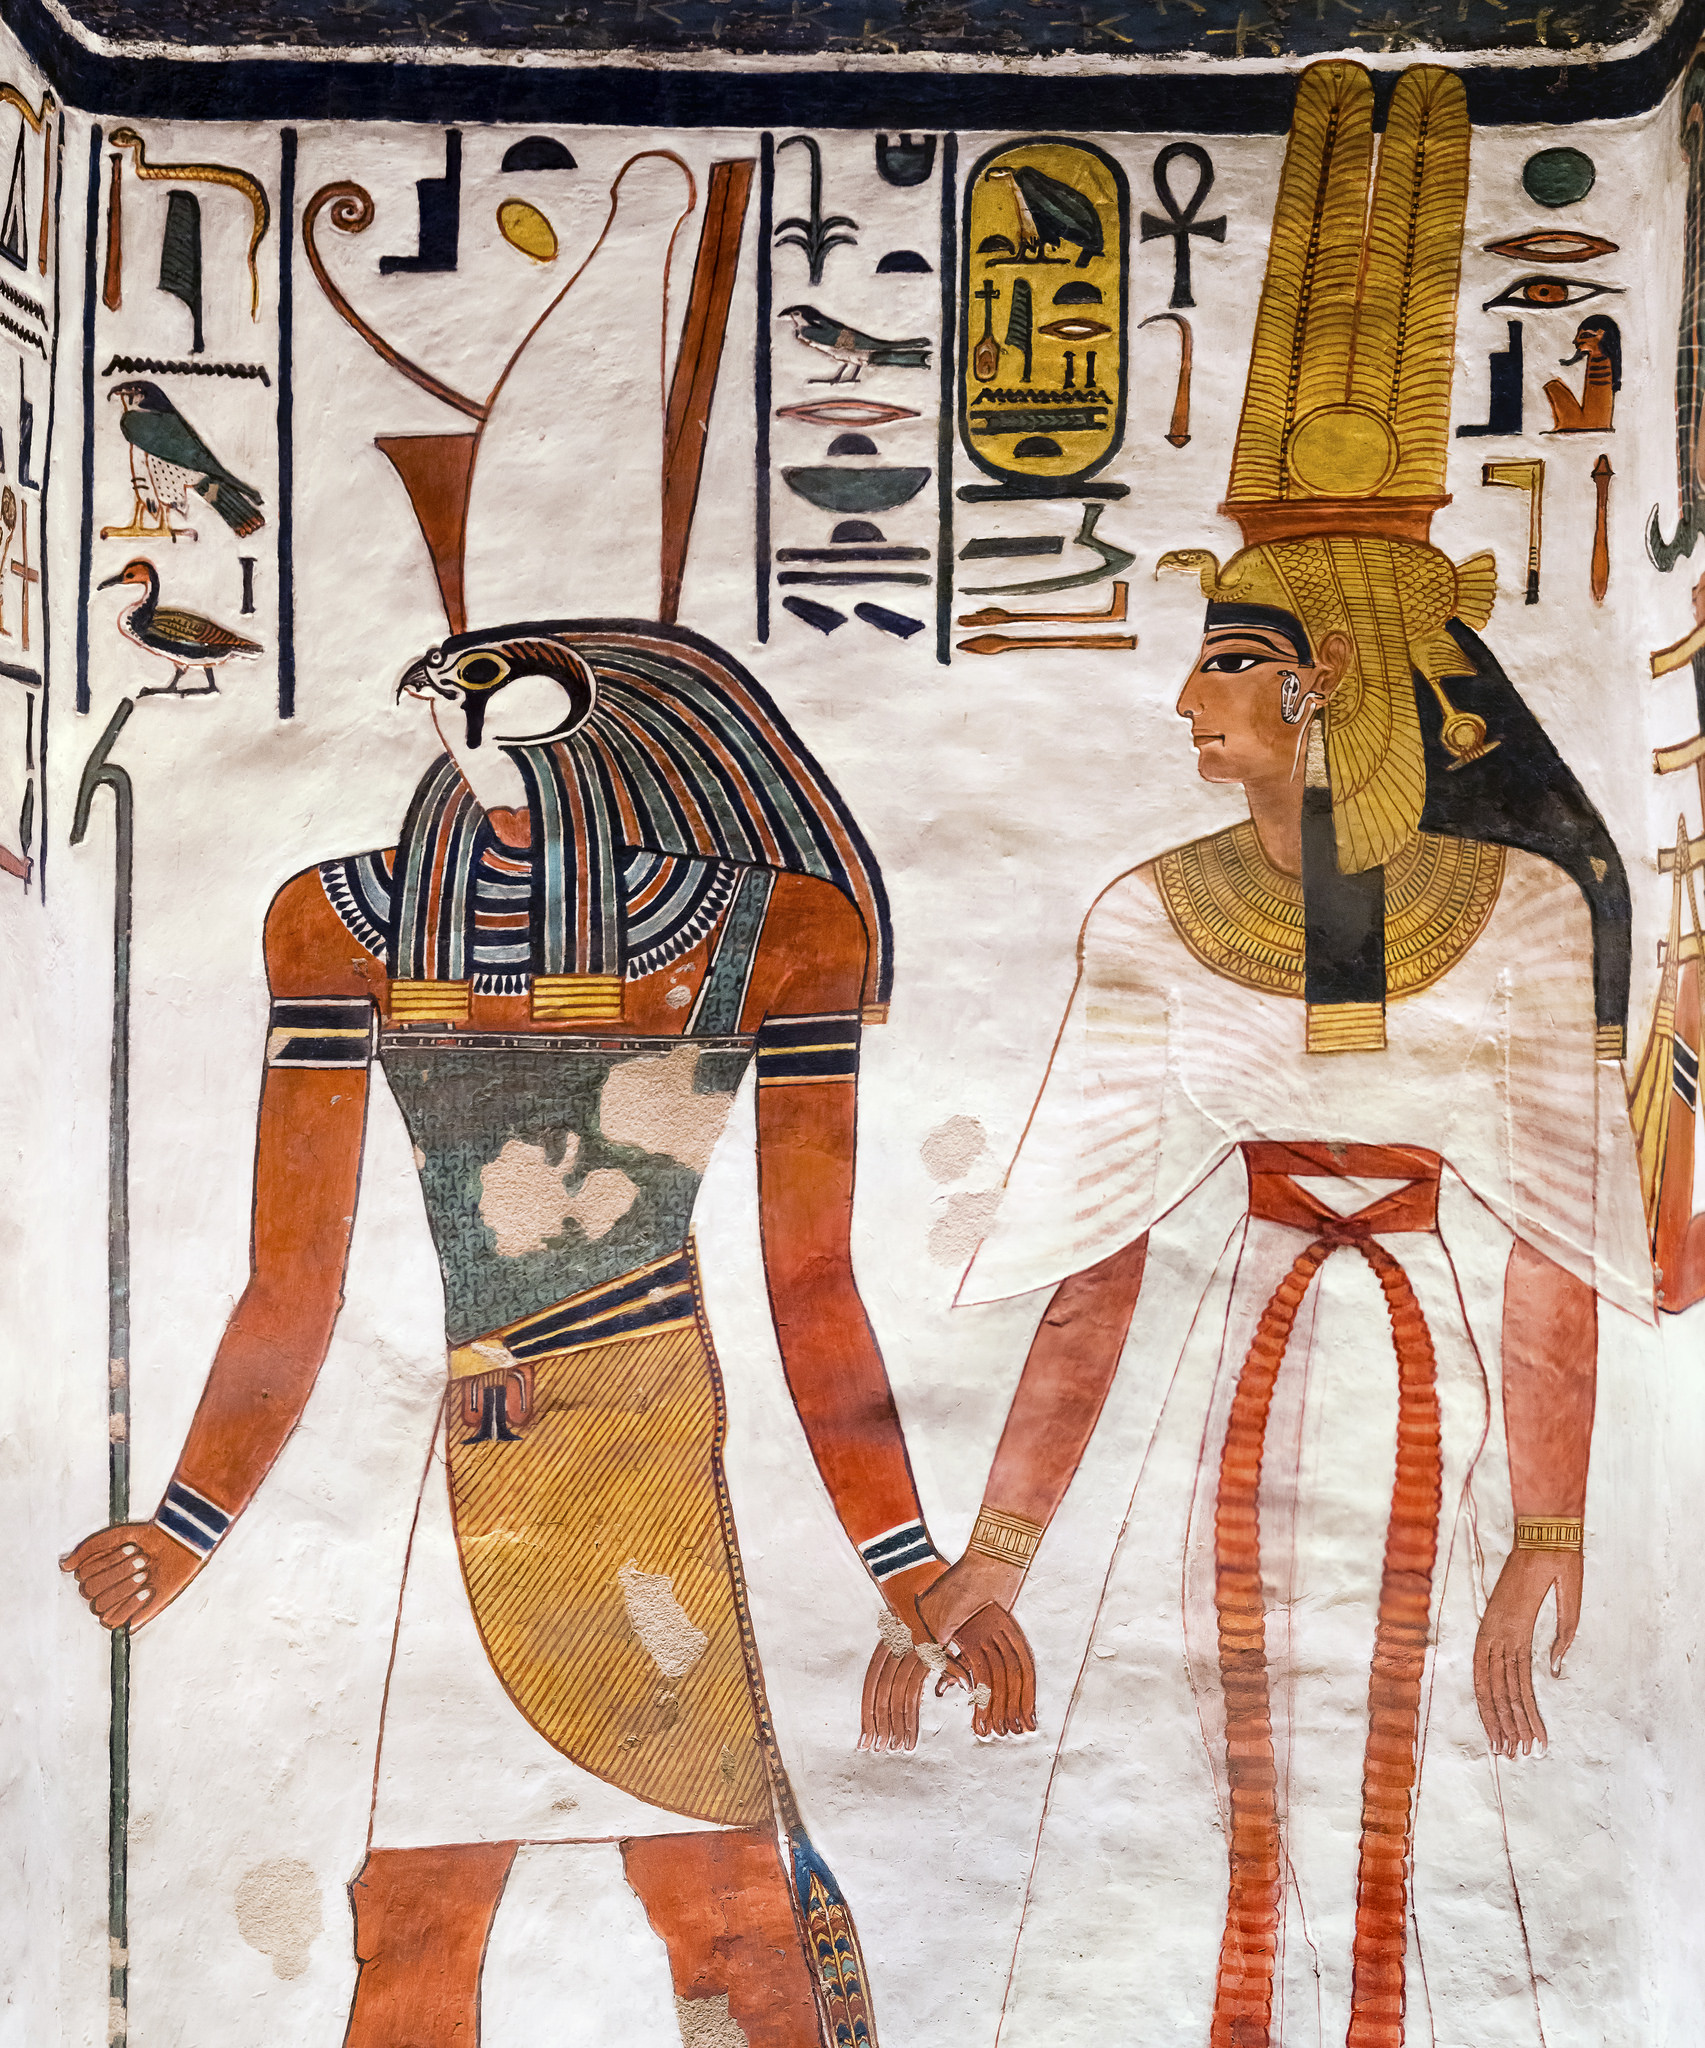 lead me to greatness. - Image from queen Nefertari's tomb, courtesy of kairoinfo4u on Flickr